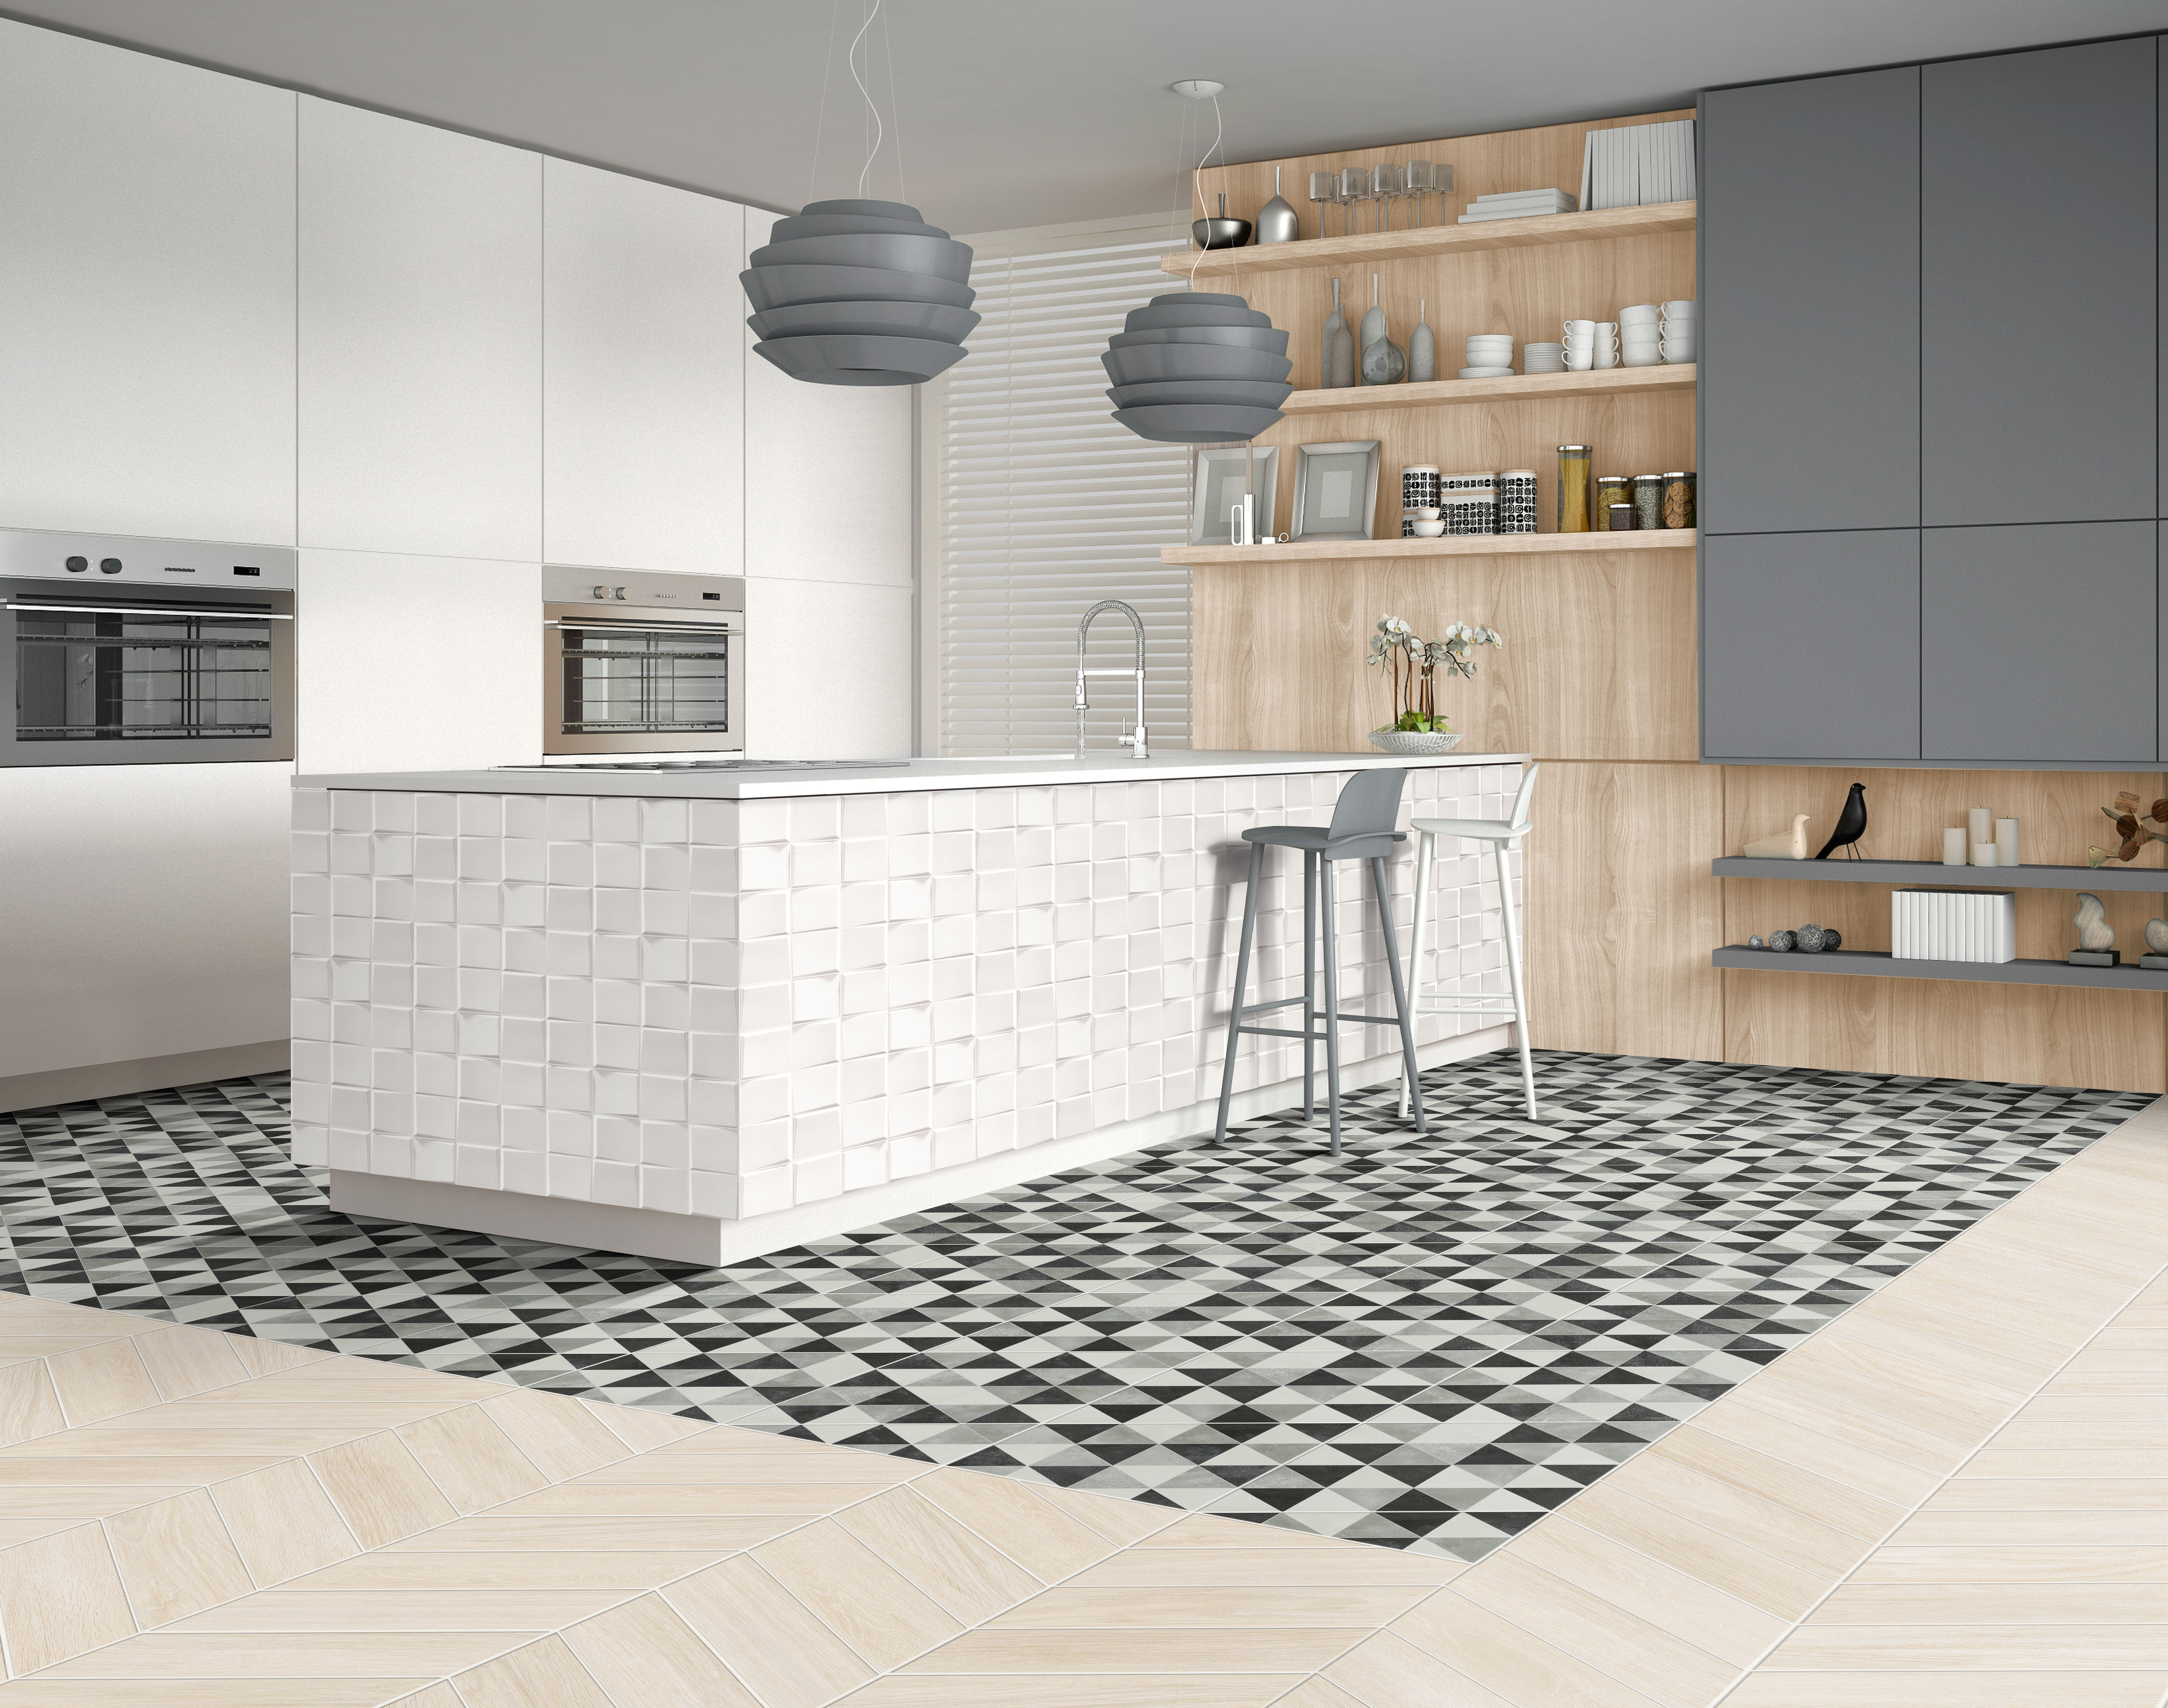 ideas shaker tile grey floor porcelain remodel pin island countertops design cabinets kitchen white quartzite countertop